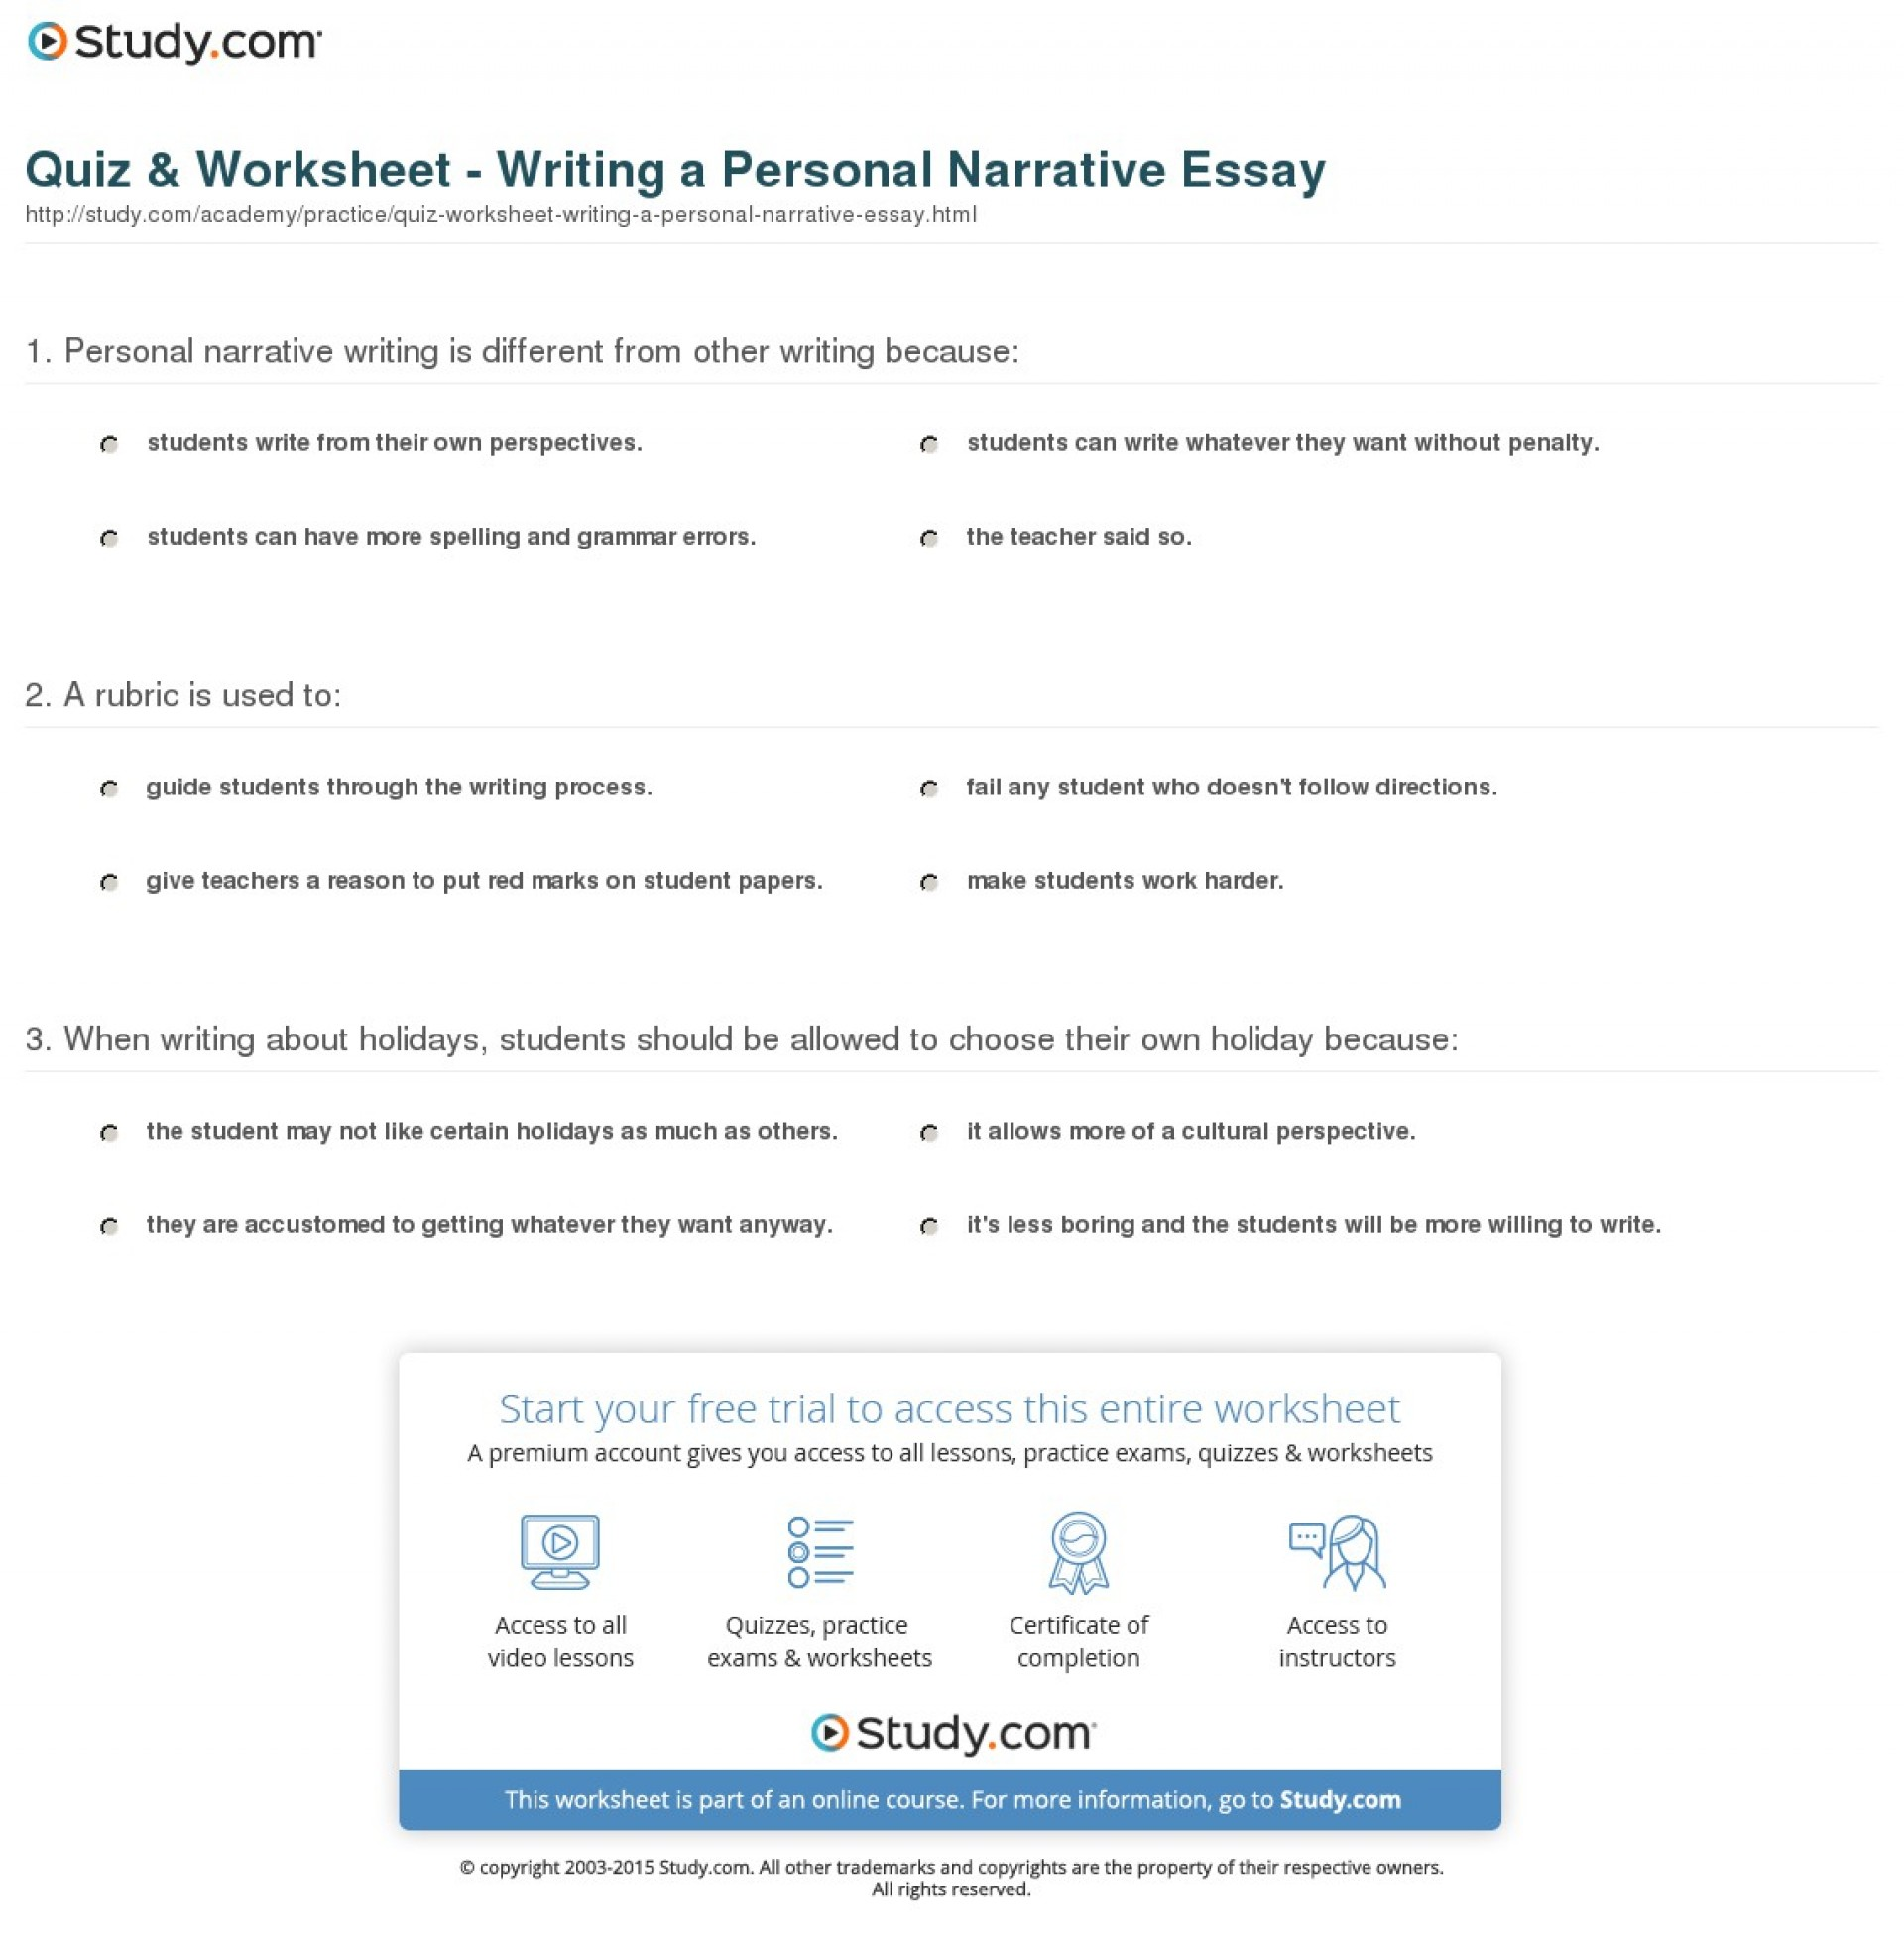 019 Quiz Worksheet Writing Personal Narrative Essay Thesis Statement For Staggering How To Write A Examples The Should Be Created During Brainly 1920